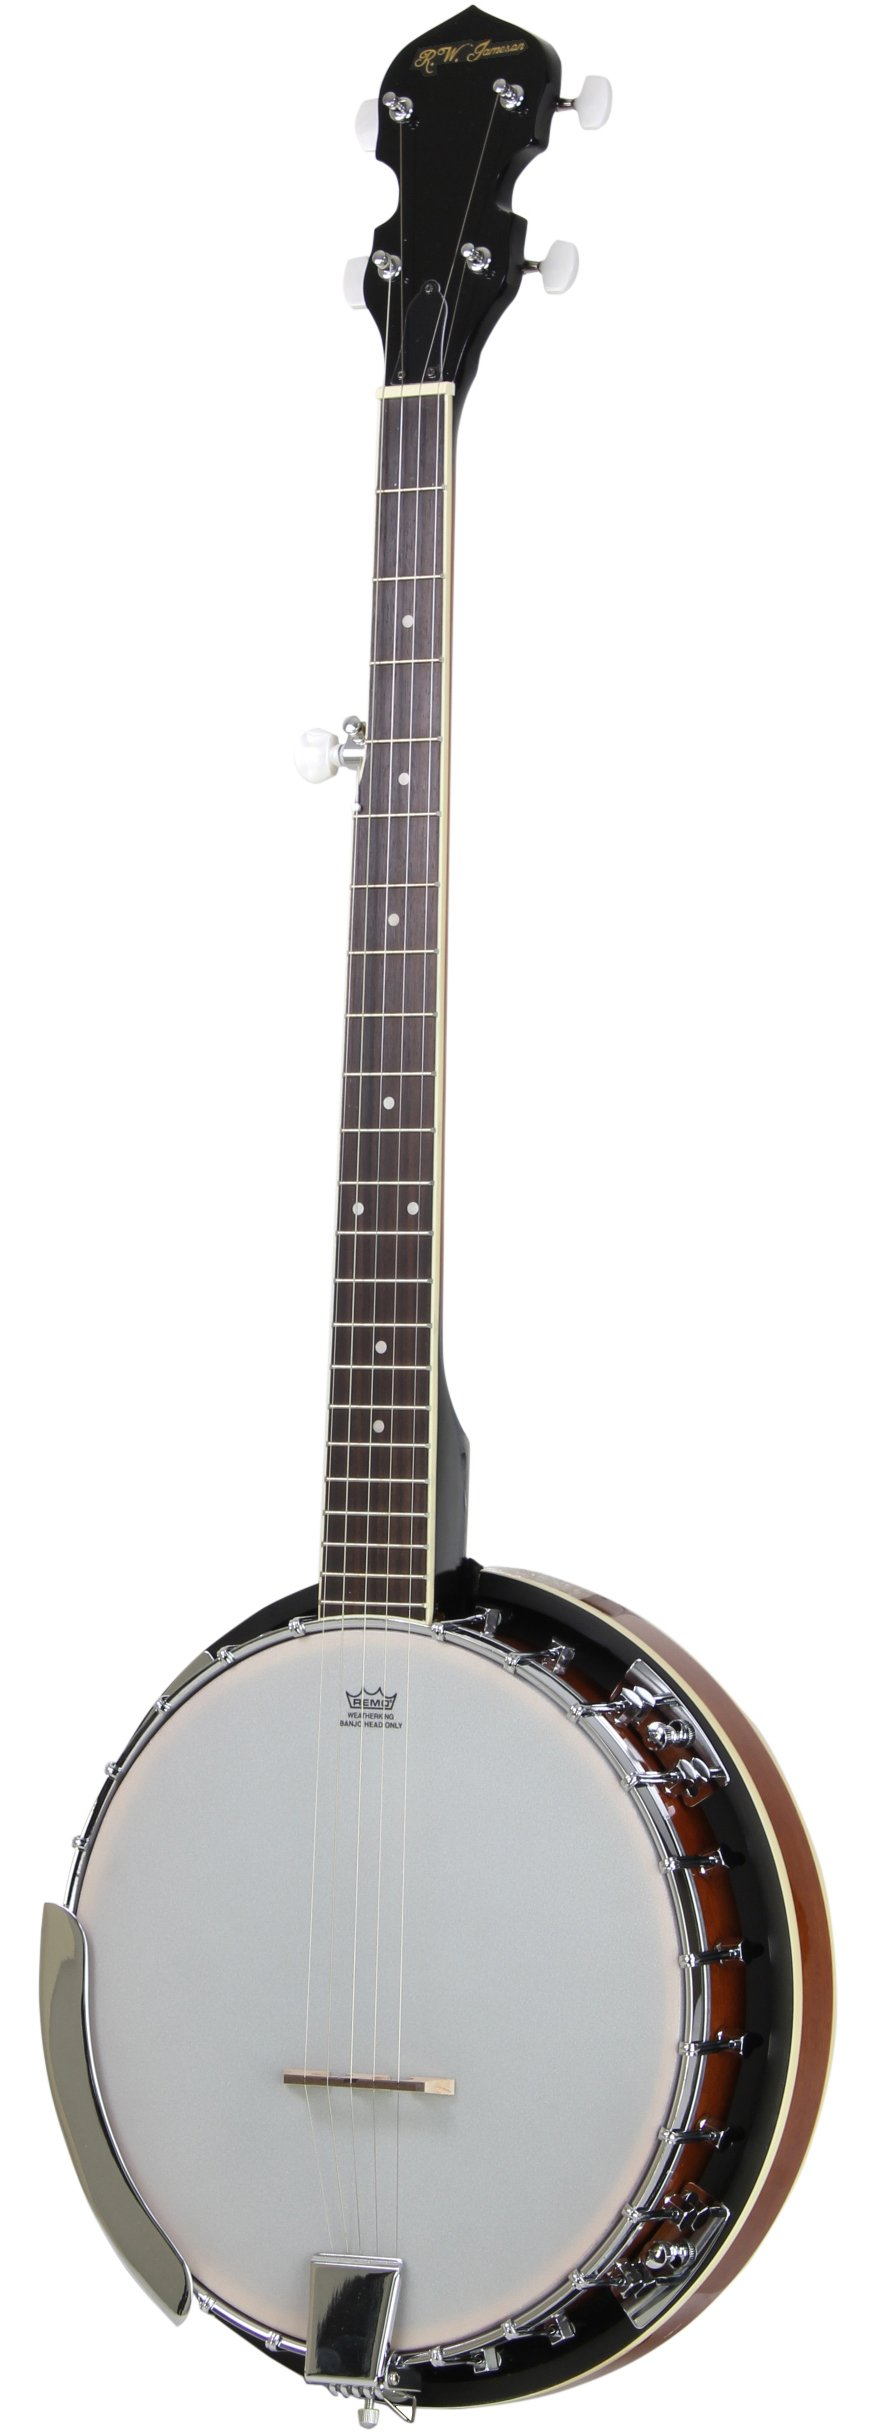 5-String Banjo 24 Bracket with Closed Solid Back and Geared 5th Tuner By Jameson Guitars by Jameson Guitars